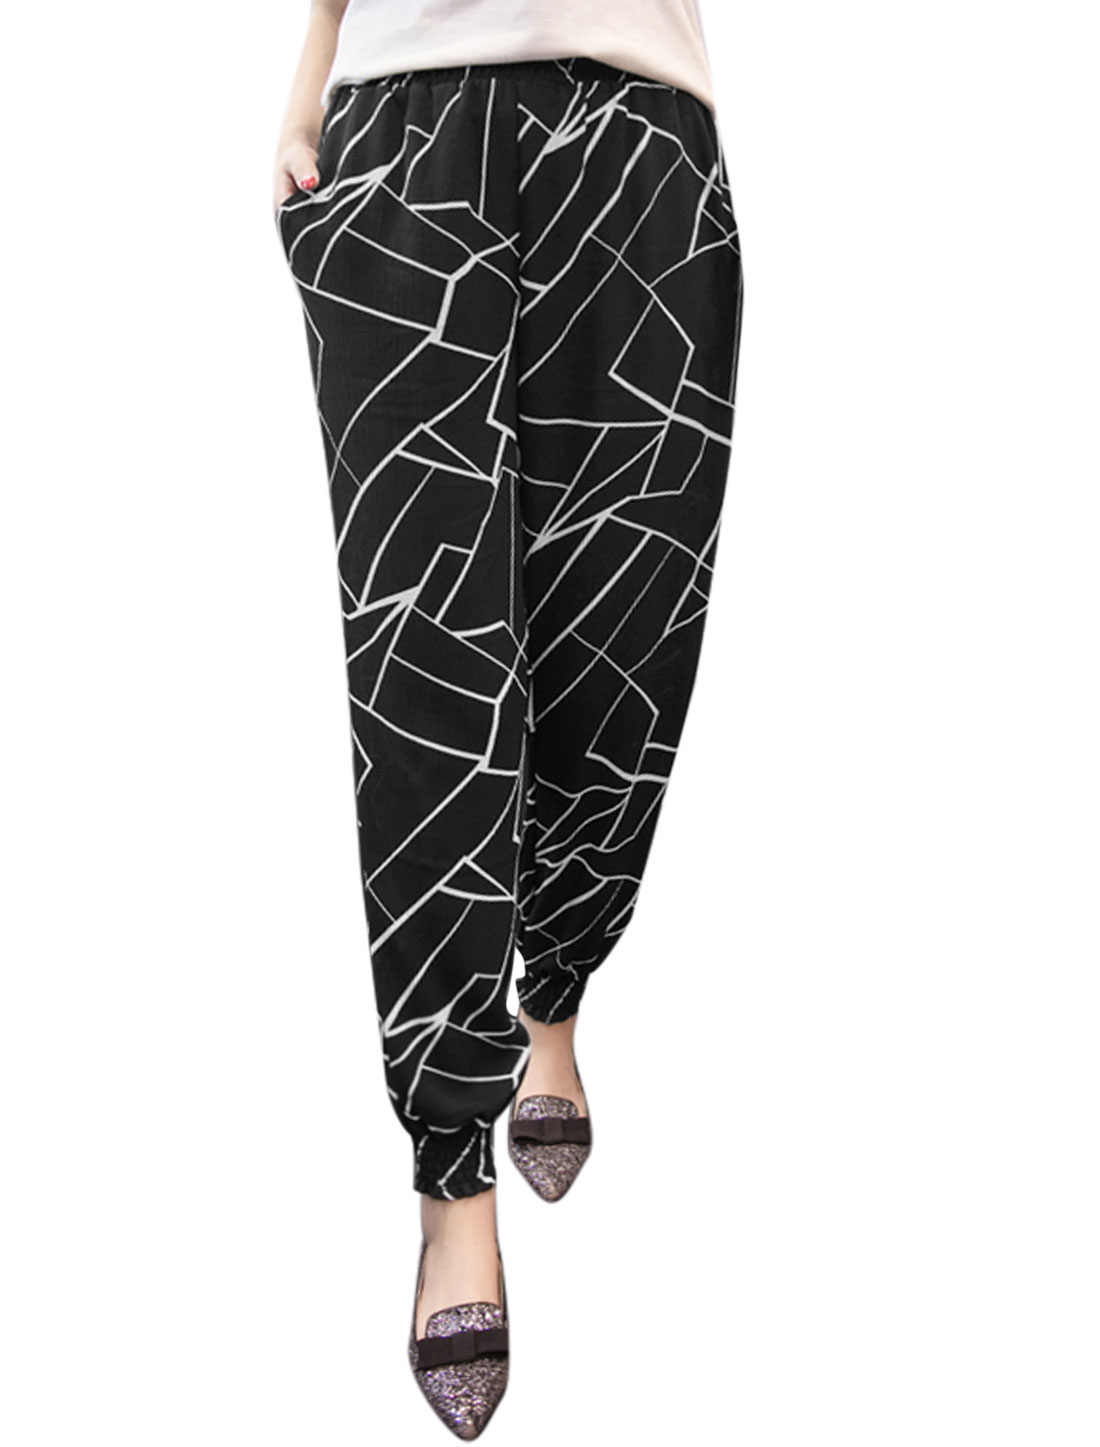 Women Elastic Waist Shattered Glass Prints Tapered Cropped Pants Black M